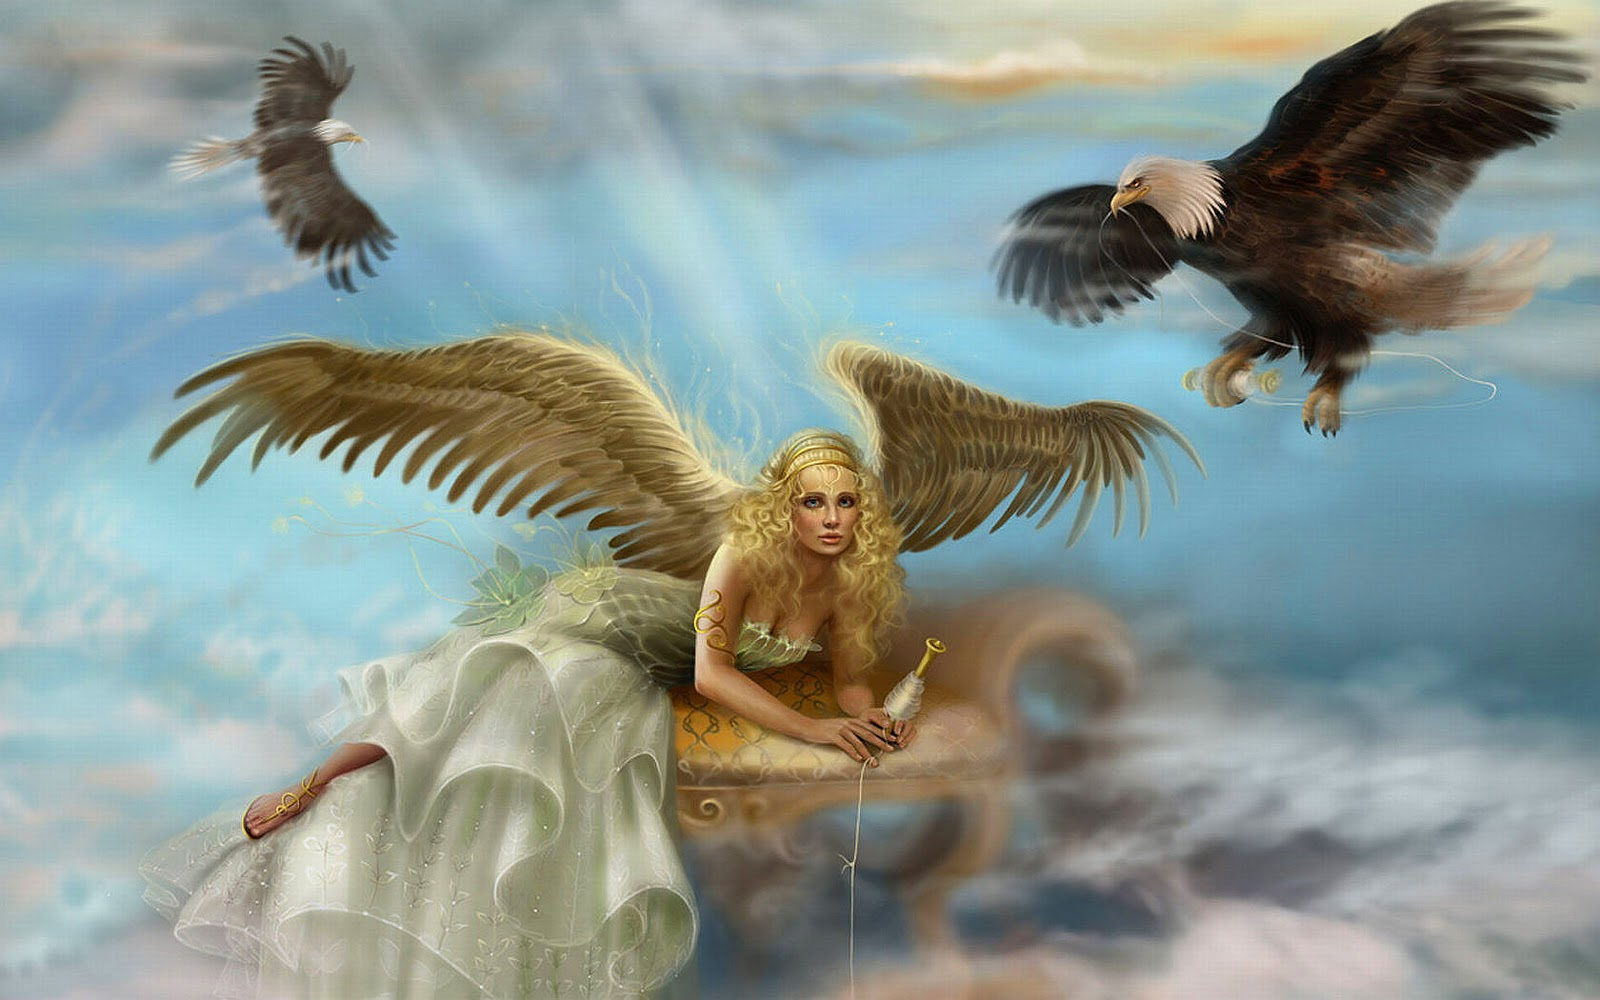 Best Wallpaper Collection: Best Angel Wallpapers